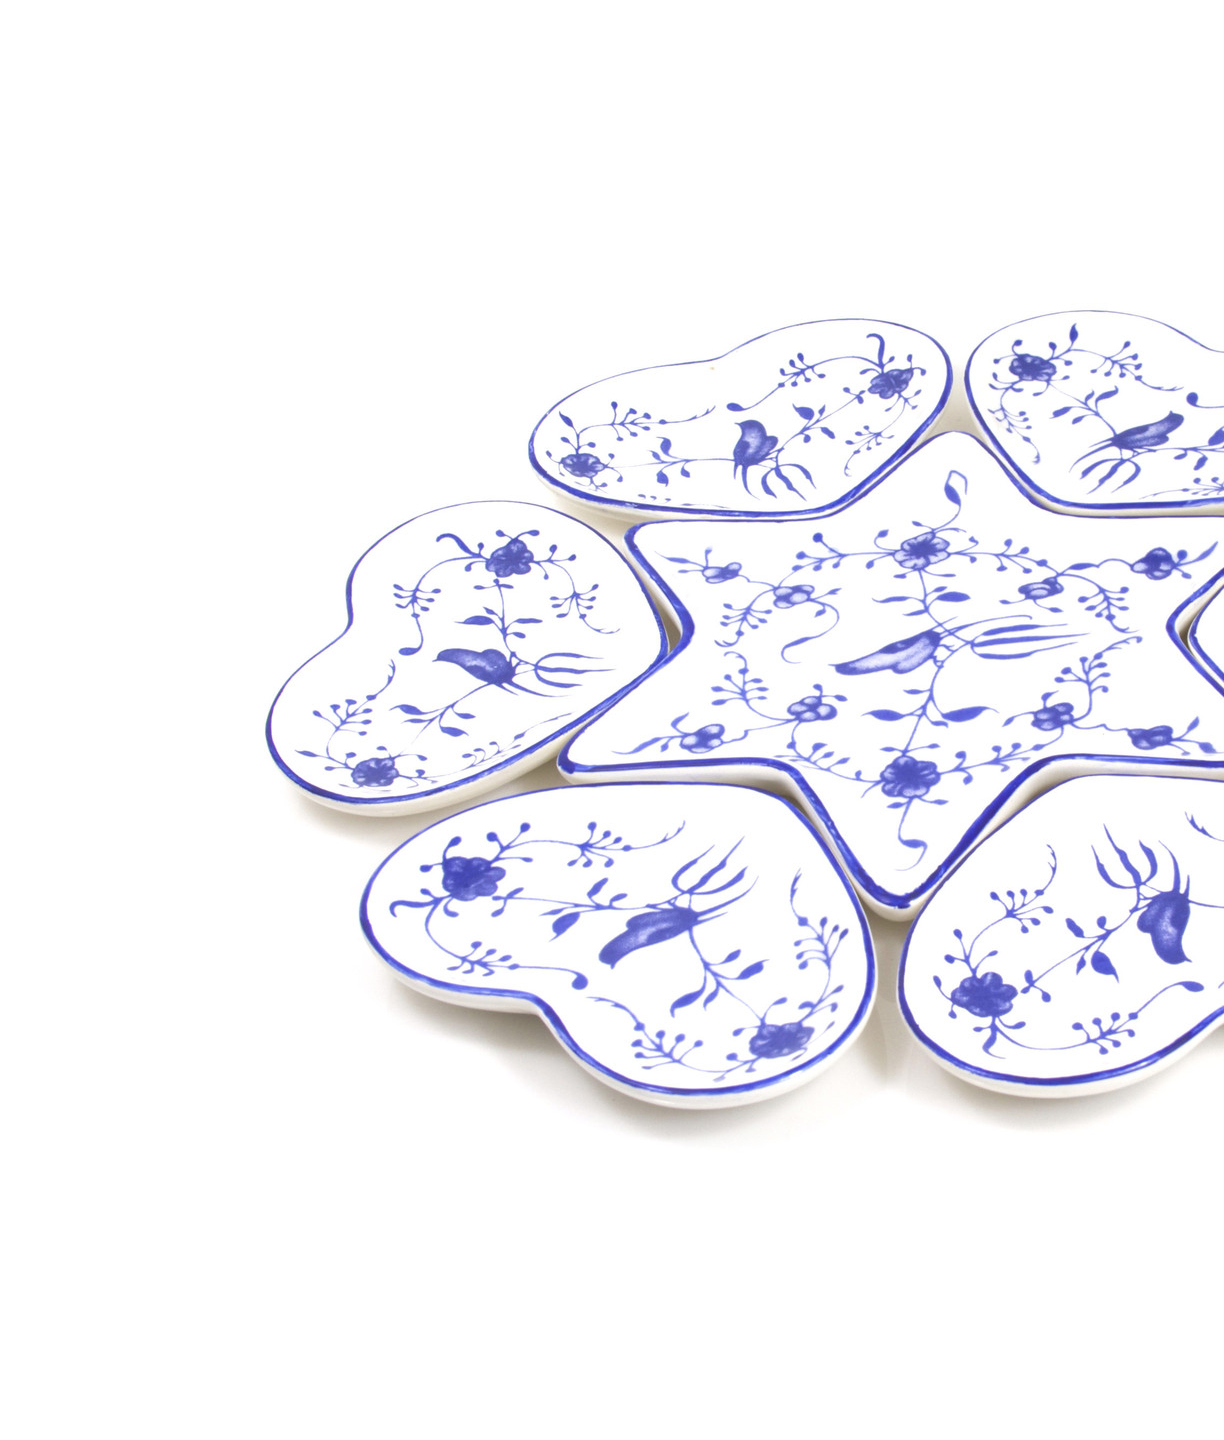 Ceramic Seder Plate With Heart Dishes